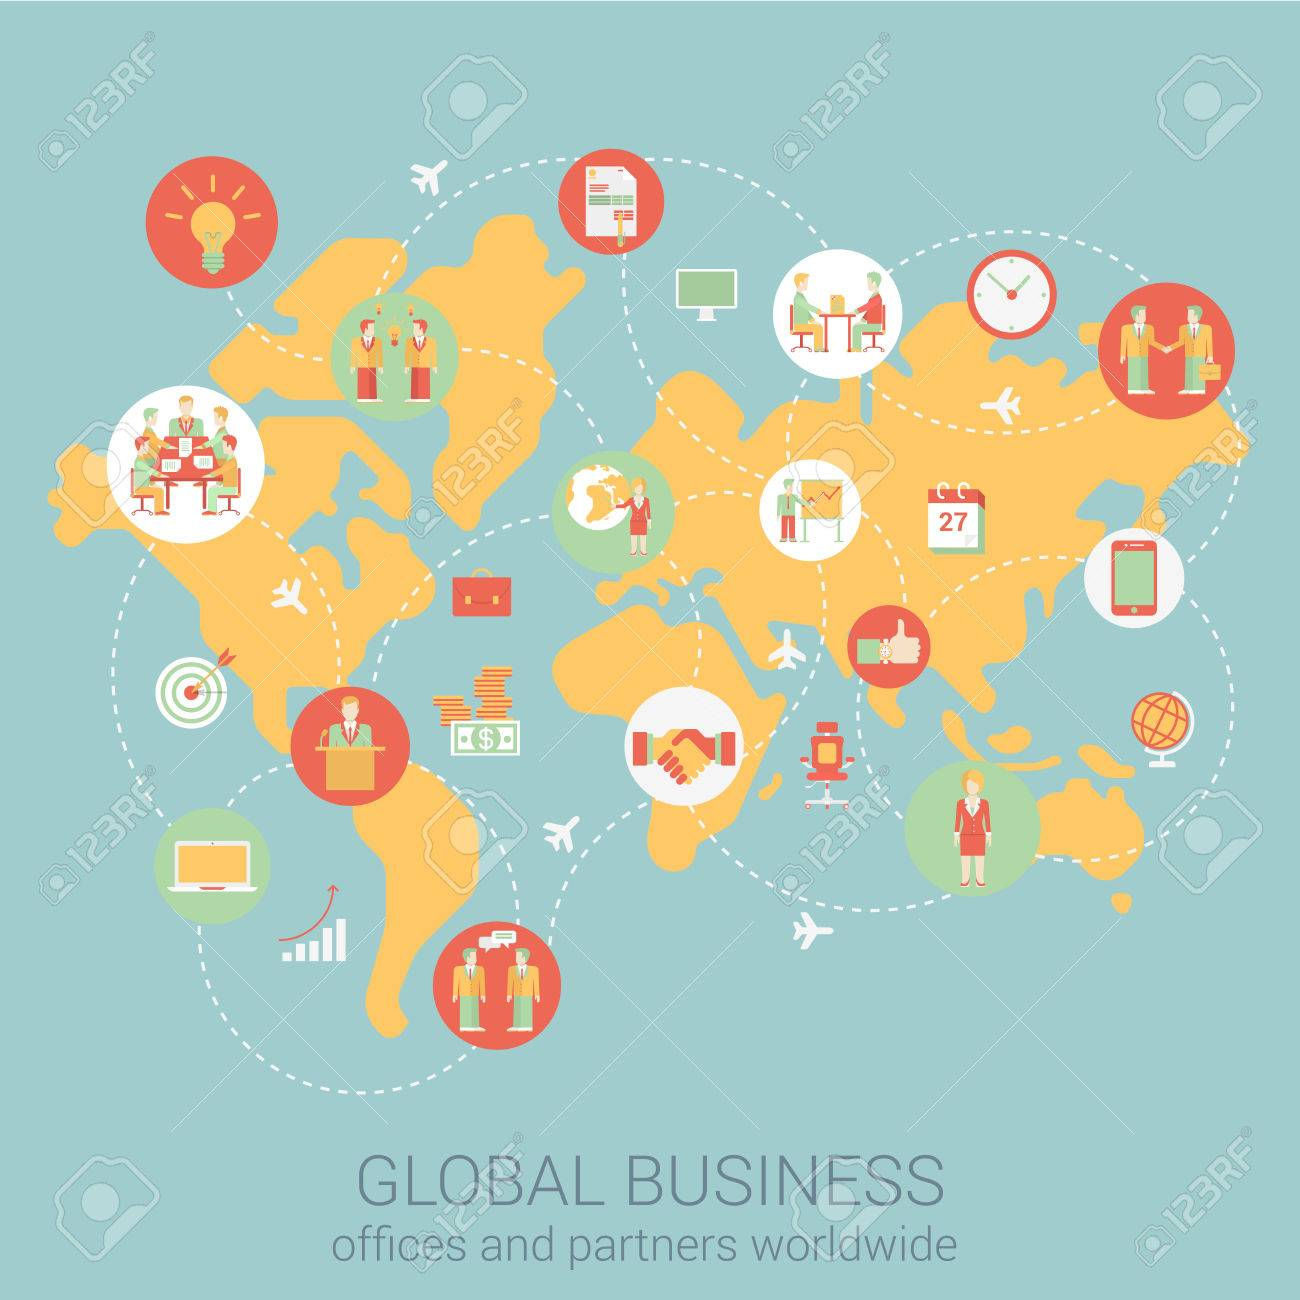 Global business worldwide flat style design vector illustration global business worldwide flat style design vector illustration world map people partnership link connections staff office gumiabroncs Gallery